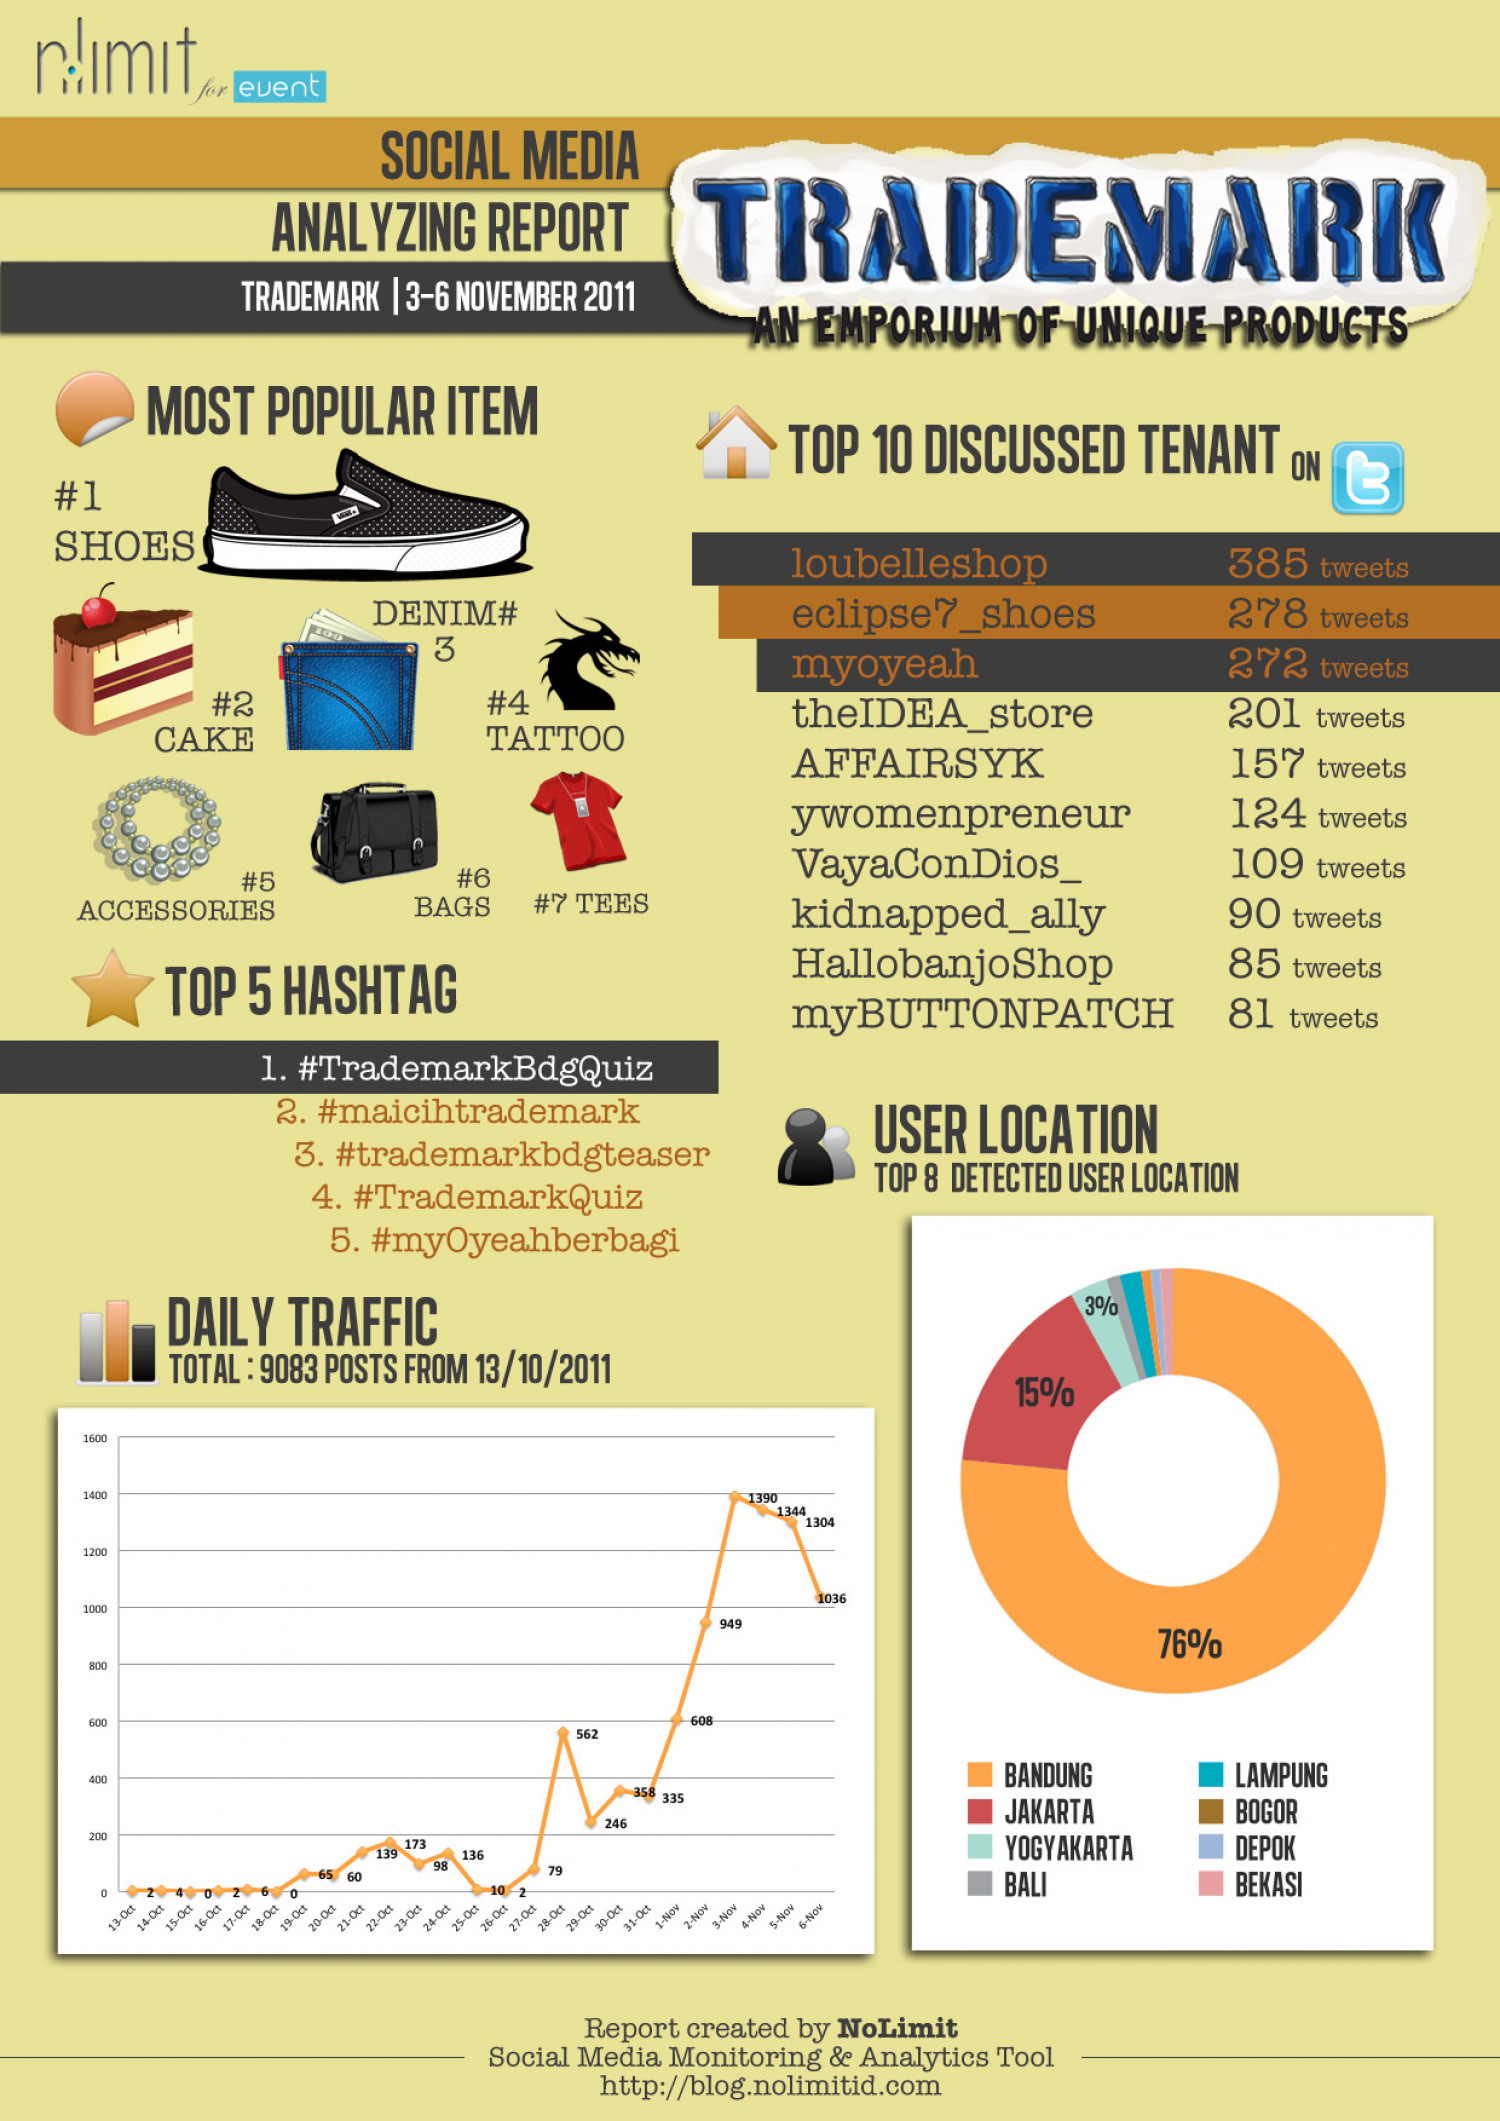 Trademark Event Infographic